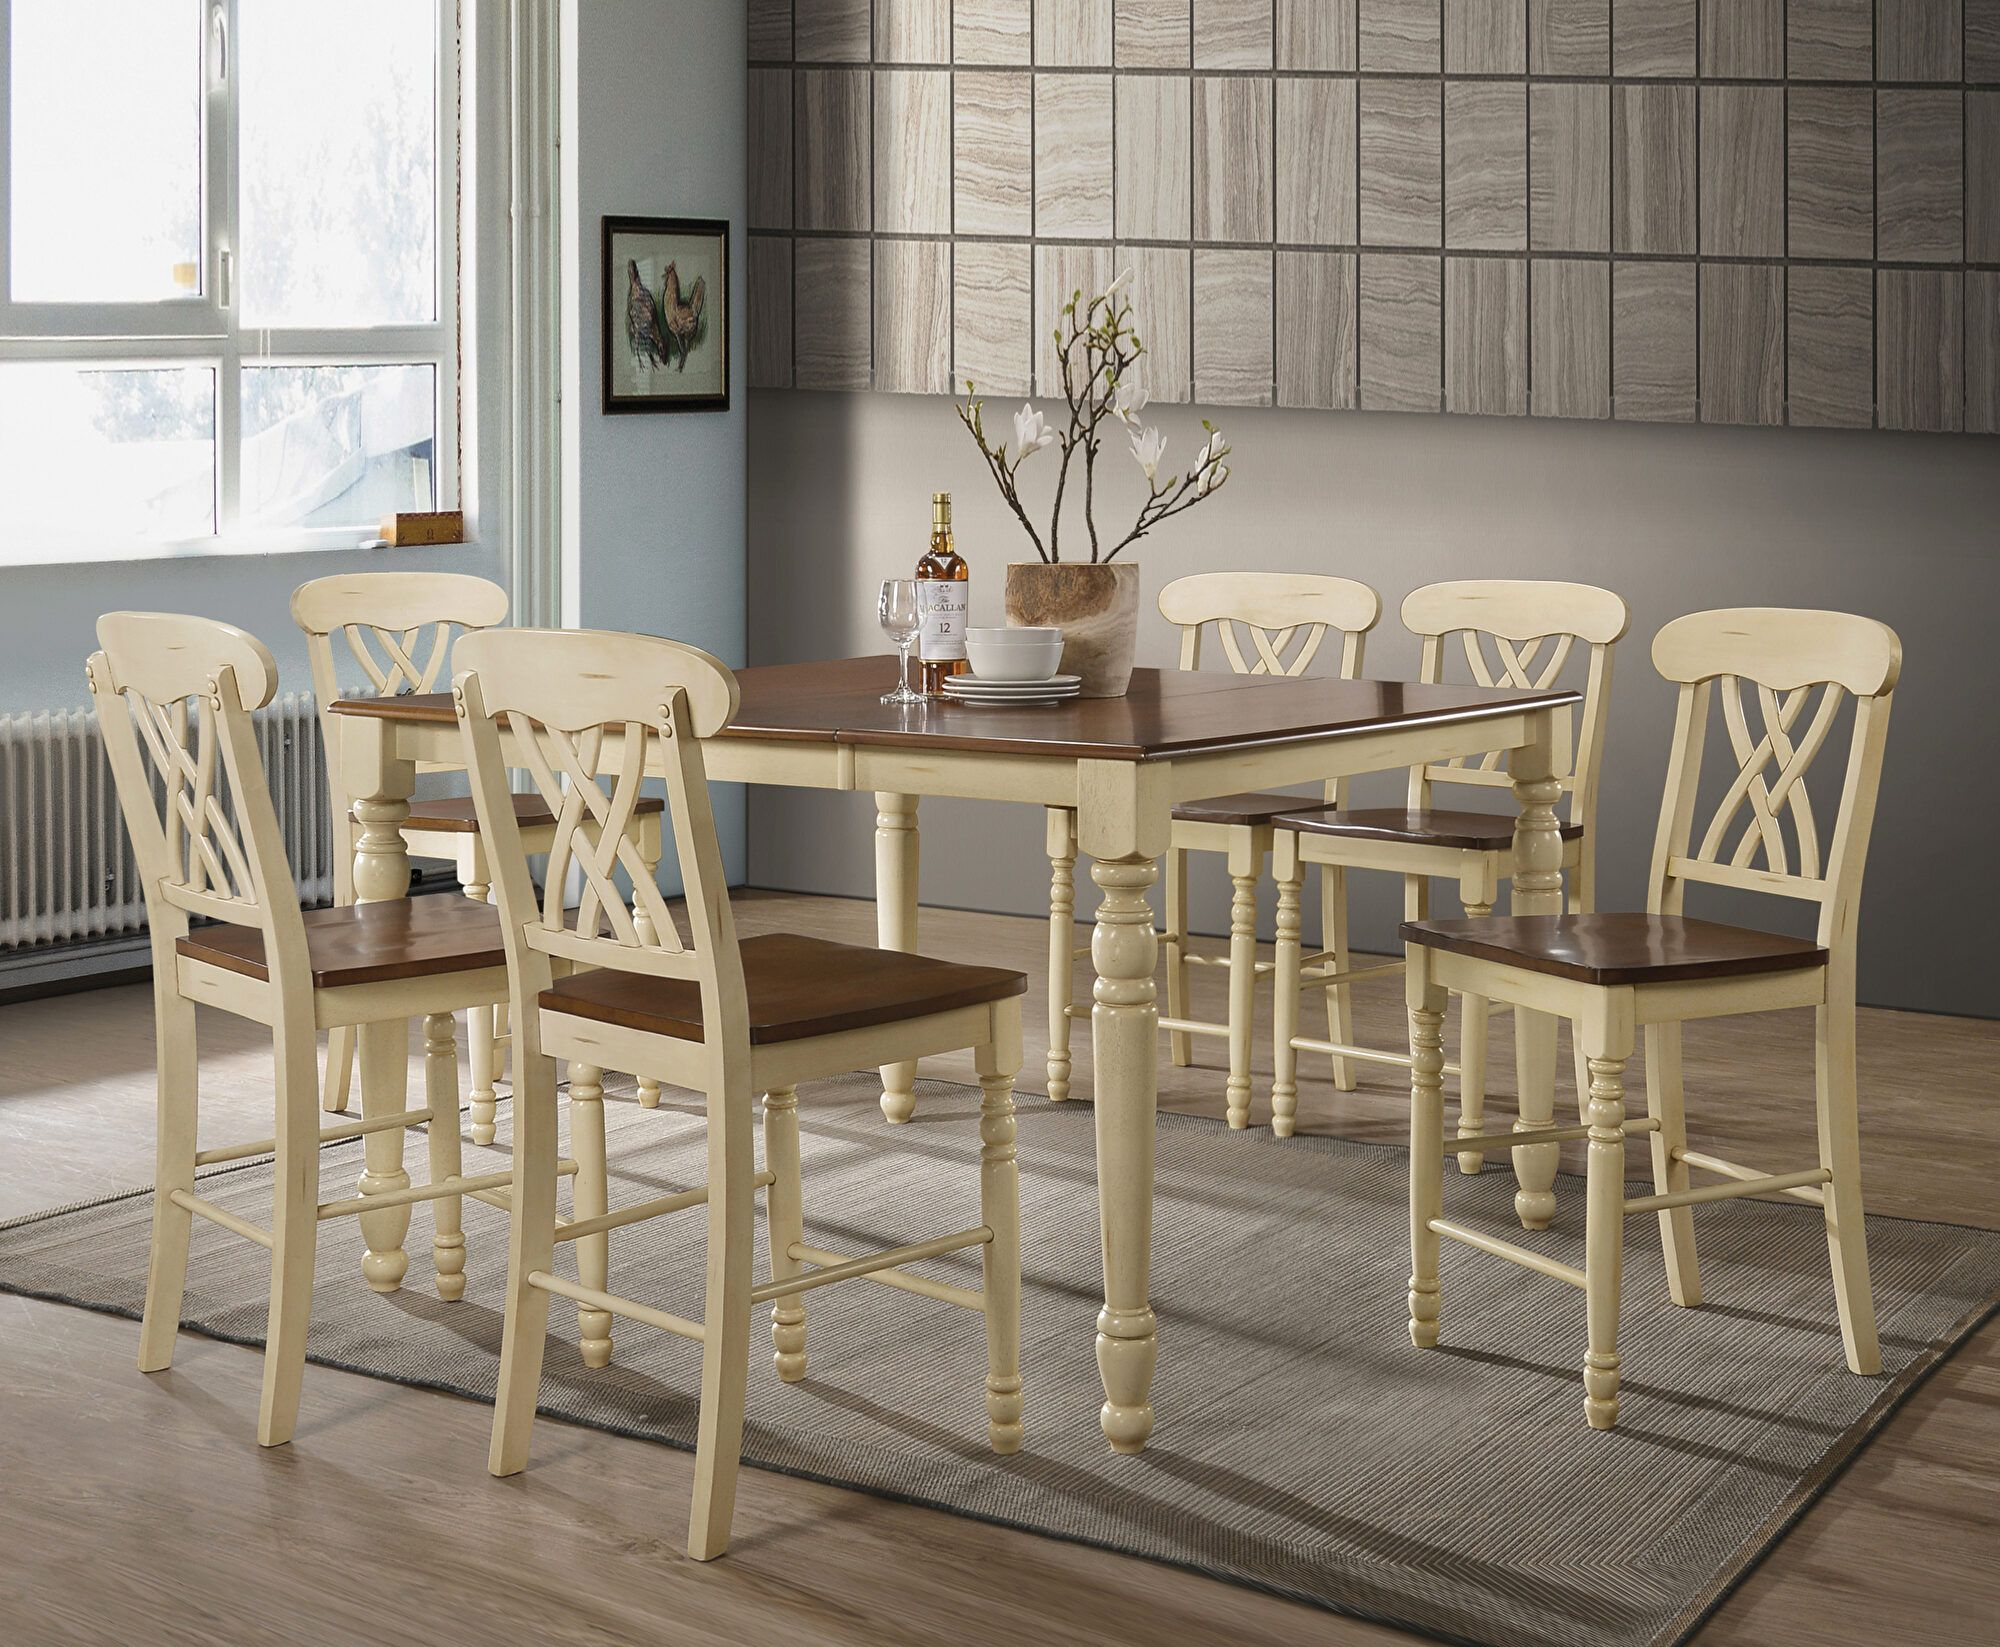 Dylan Table 70430 Acme Corporation Counter Height Dining Sets In 2020 Acme Furniture Furniture Counter Height Dining Sets